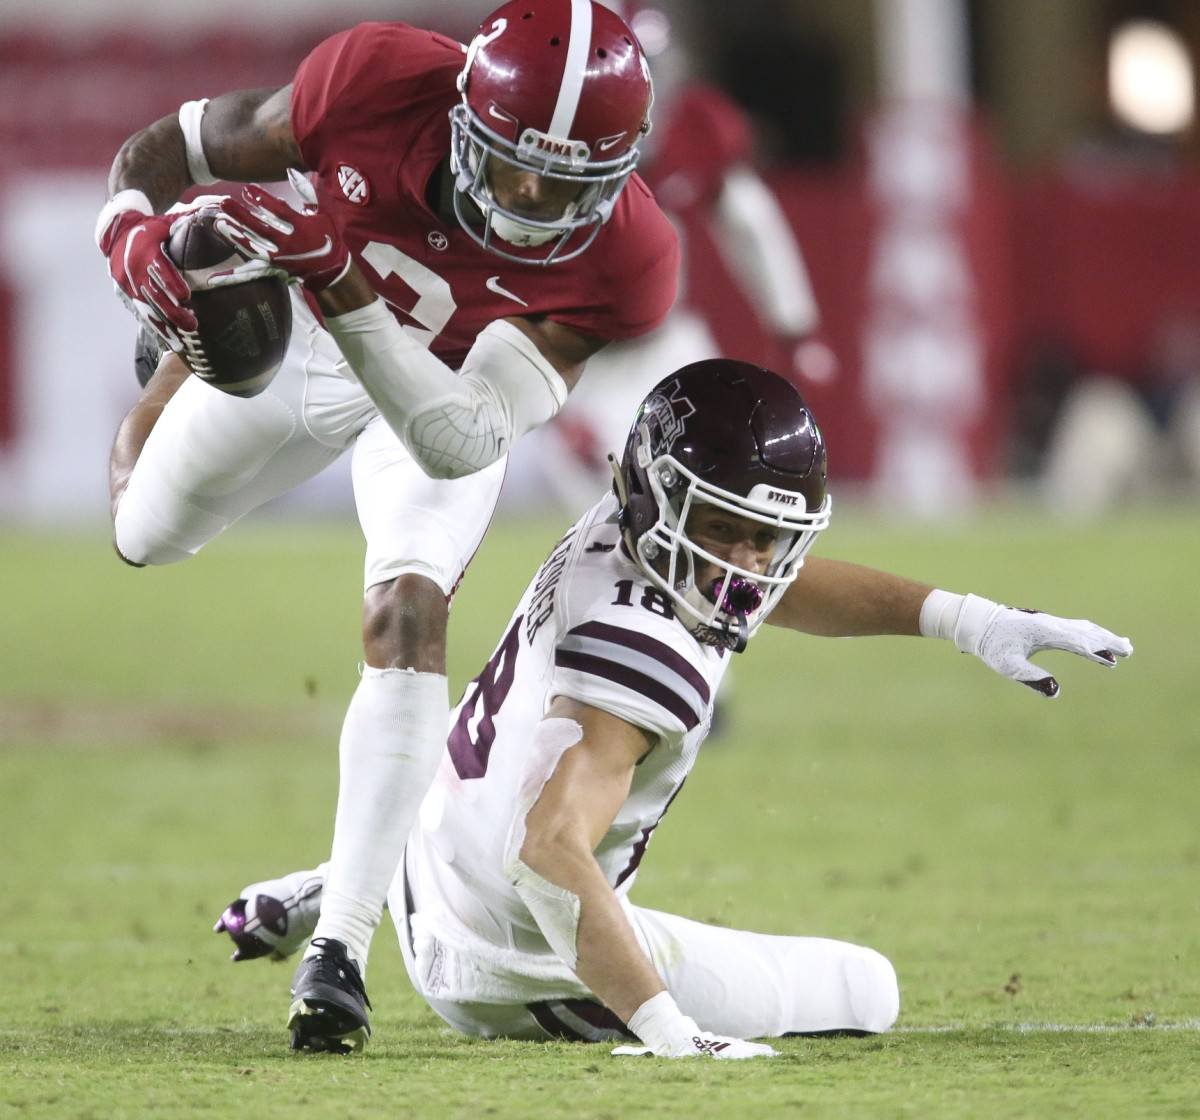 Alabama defensive back Patrick Surtain II (2) makes an interception he returned for a touchdown at Bryant-Denny Stadium during the second half of Alabama's 41-0 win over Mississippi State. The pass was inteded for Mississippi State wide receiver Cameron Gardner (18).